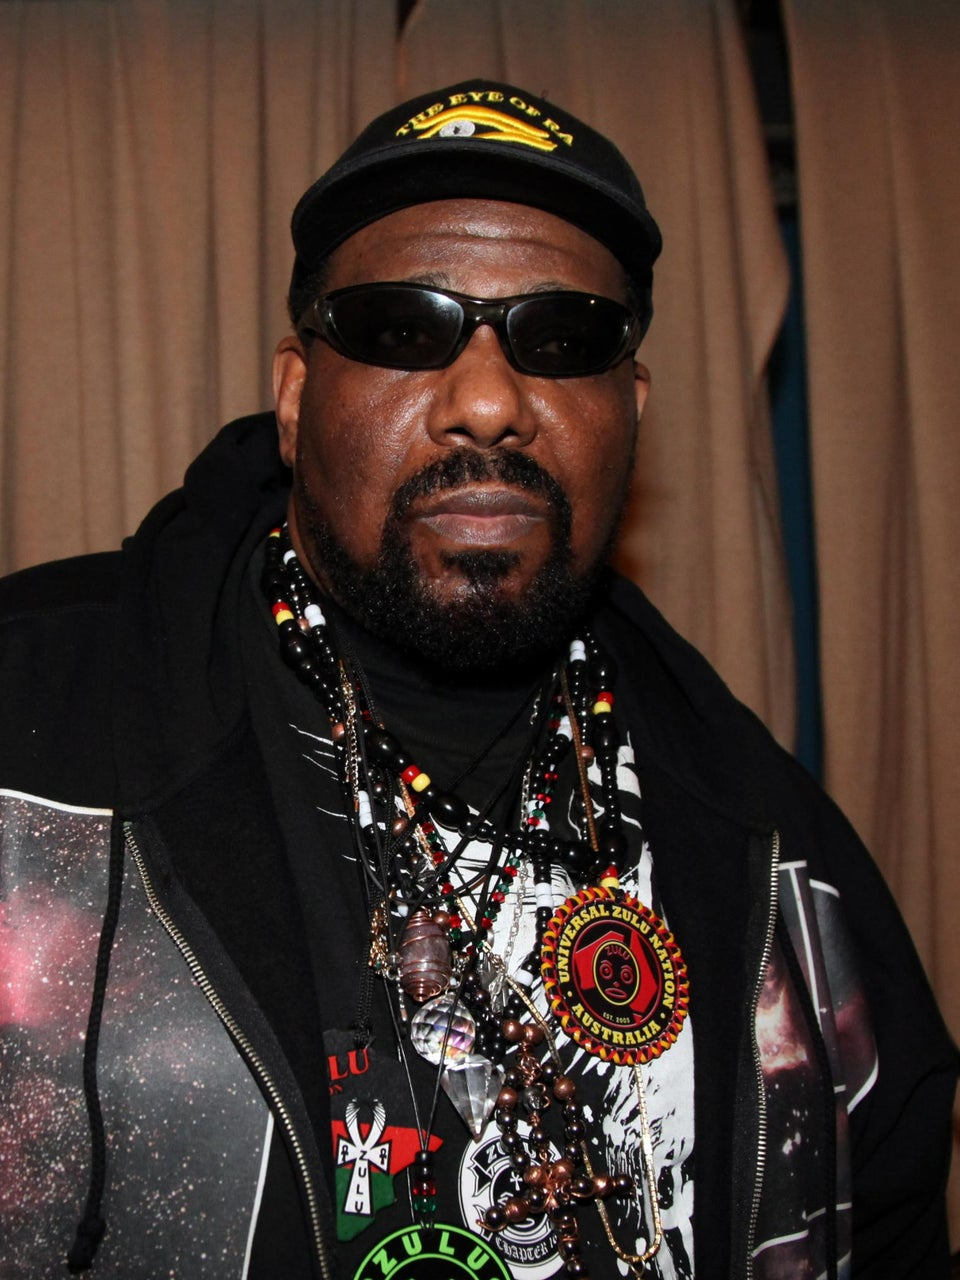 Four Alleged Sexual Abuse Victims Come Forward Against Hip Hop Pioneer Afrika Bambaataa